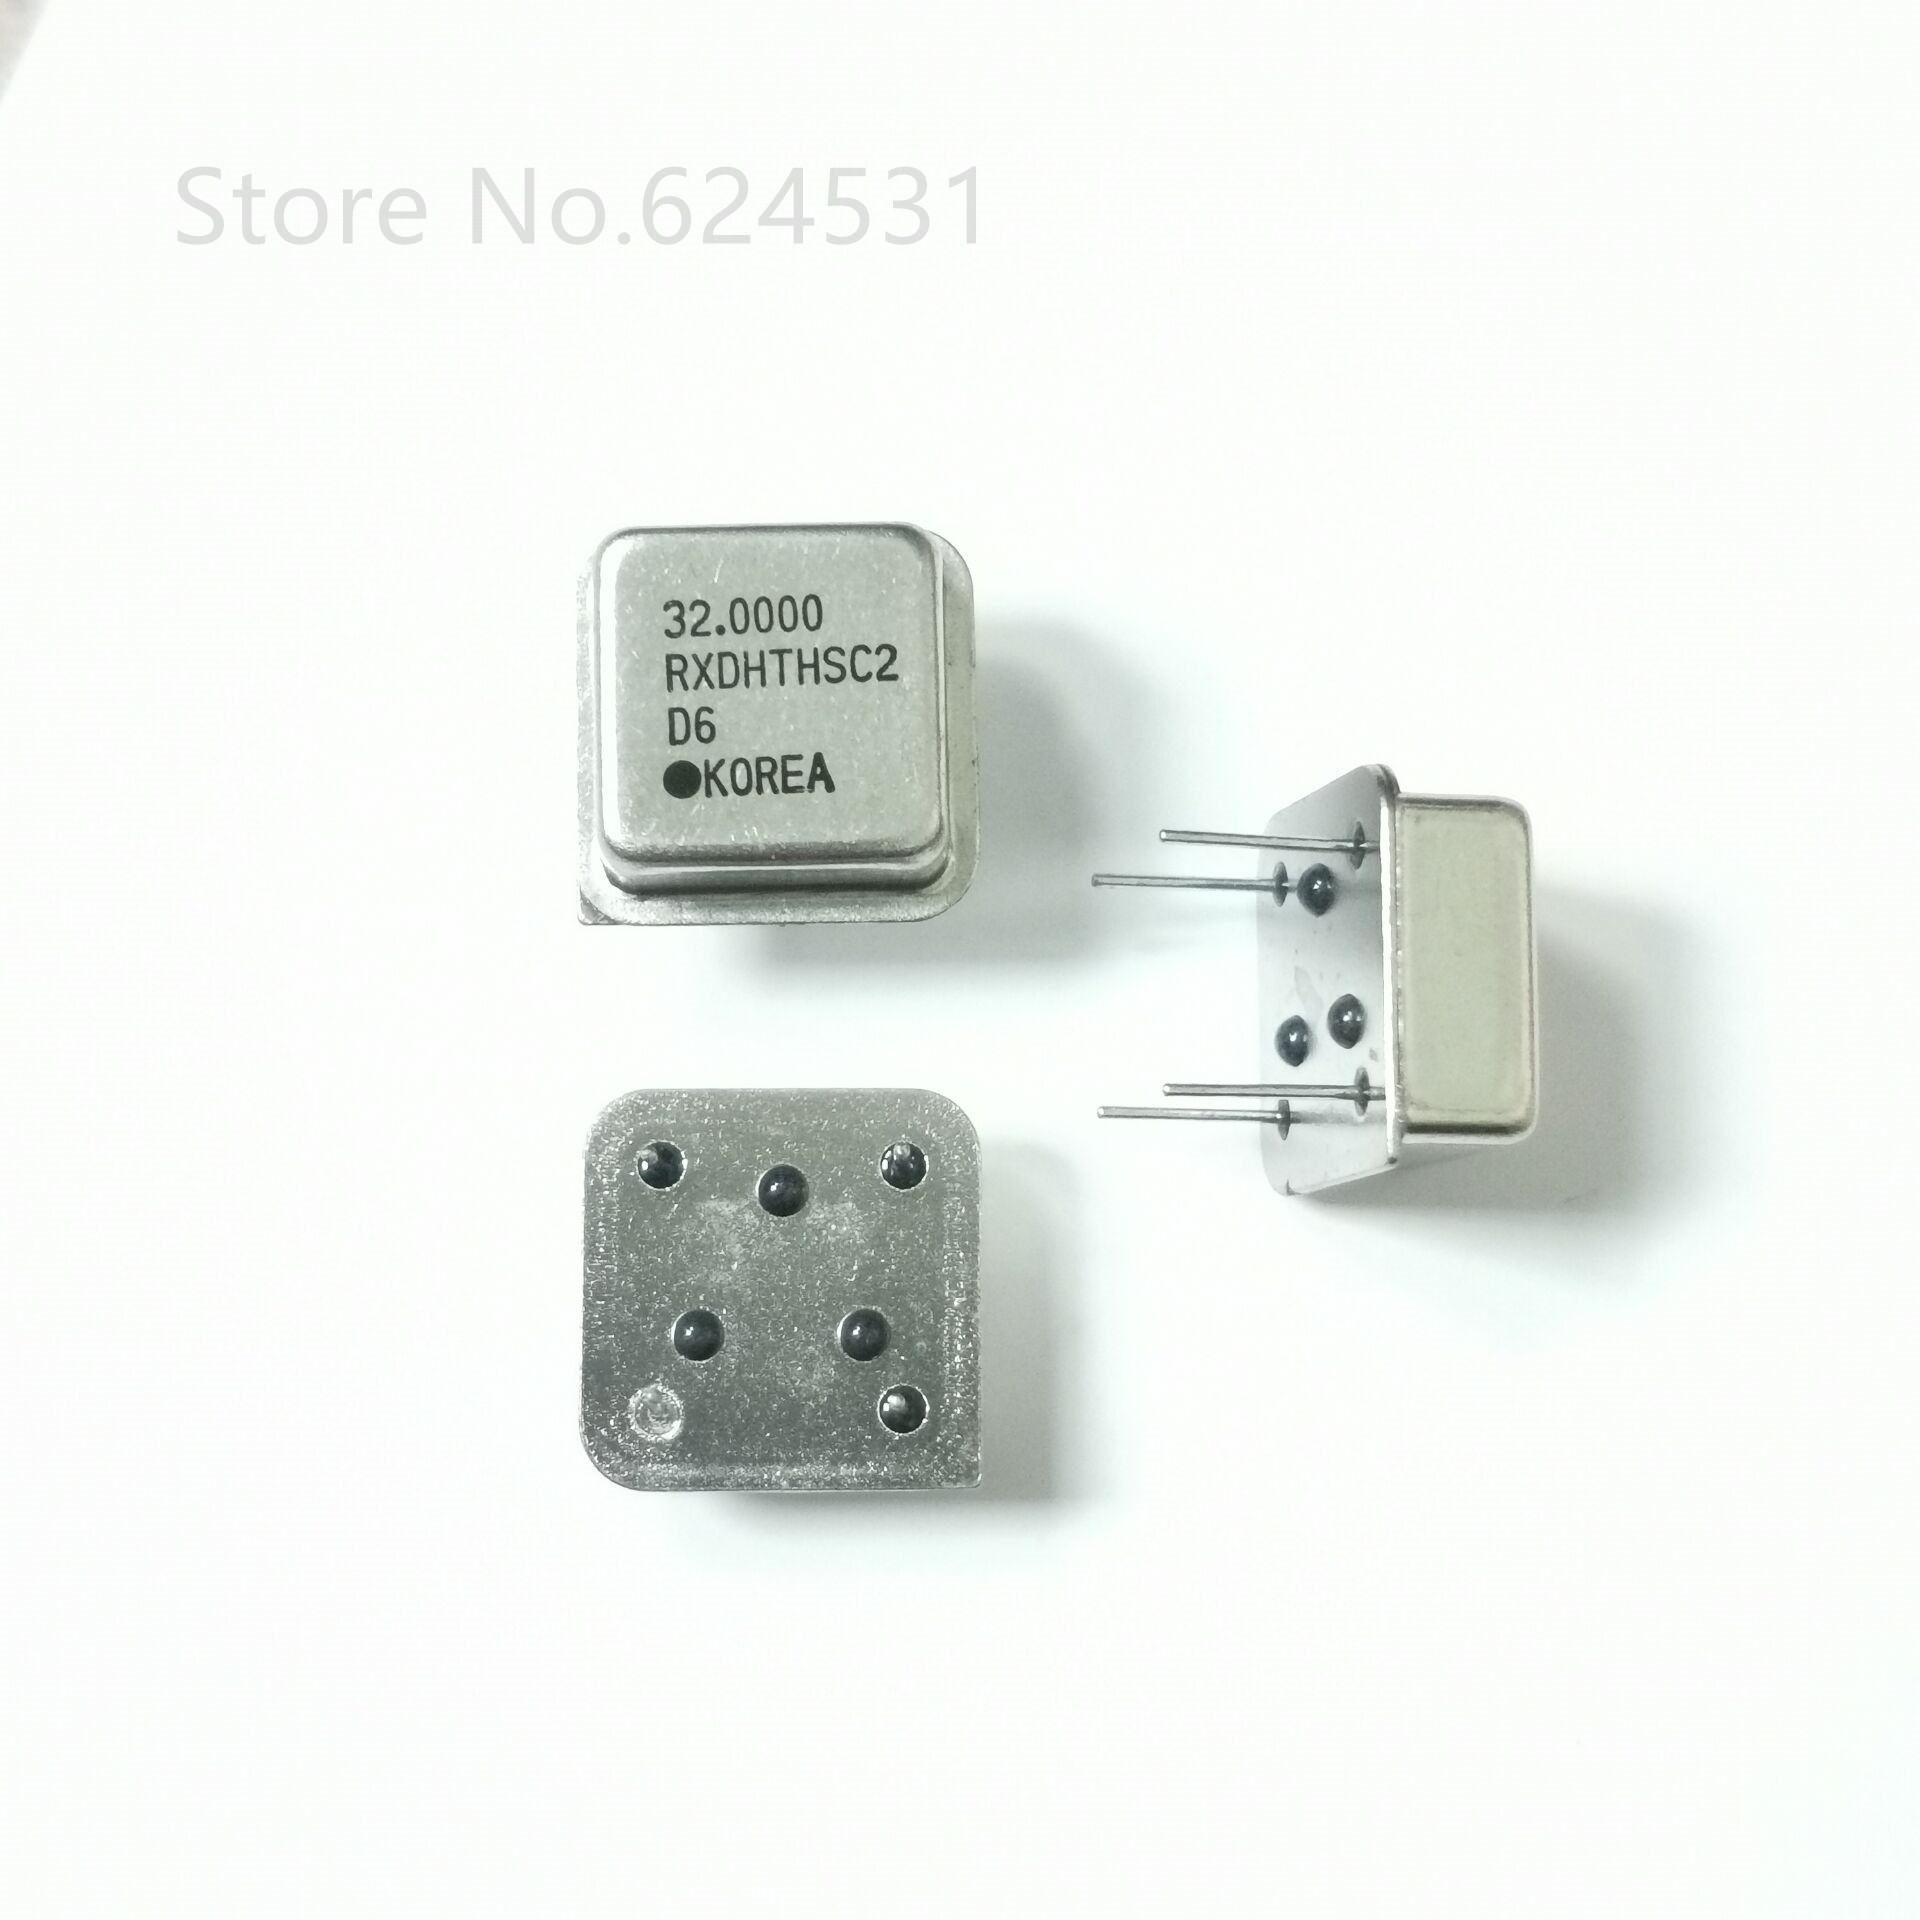 10pcs In-line Active Crystal Oscillator Clock Square Half Size DIP-4 OSC 32MHZ 32M 32.000MHZ